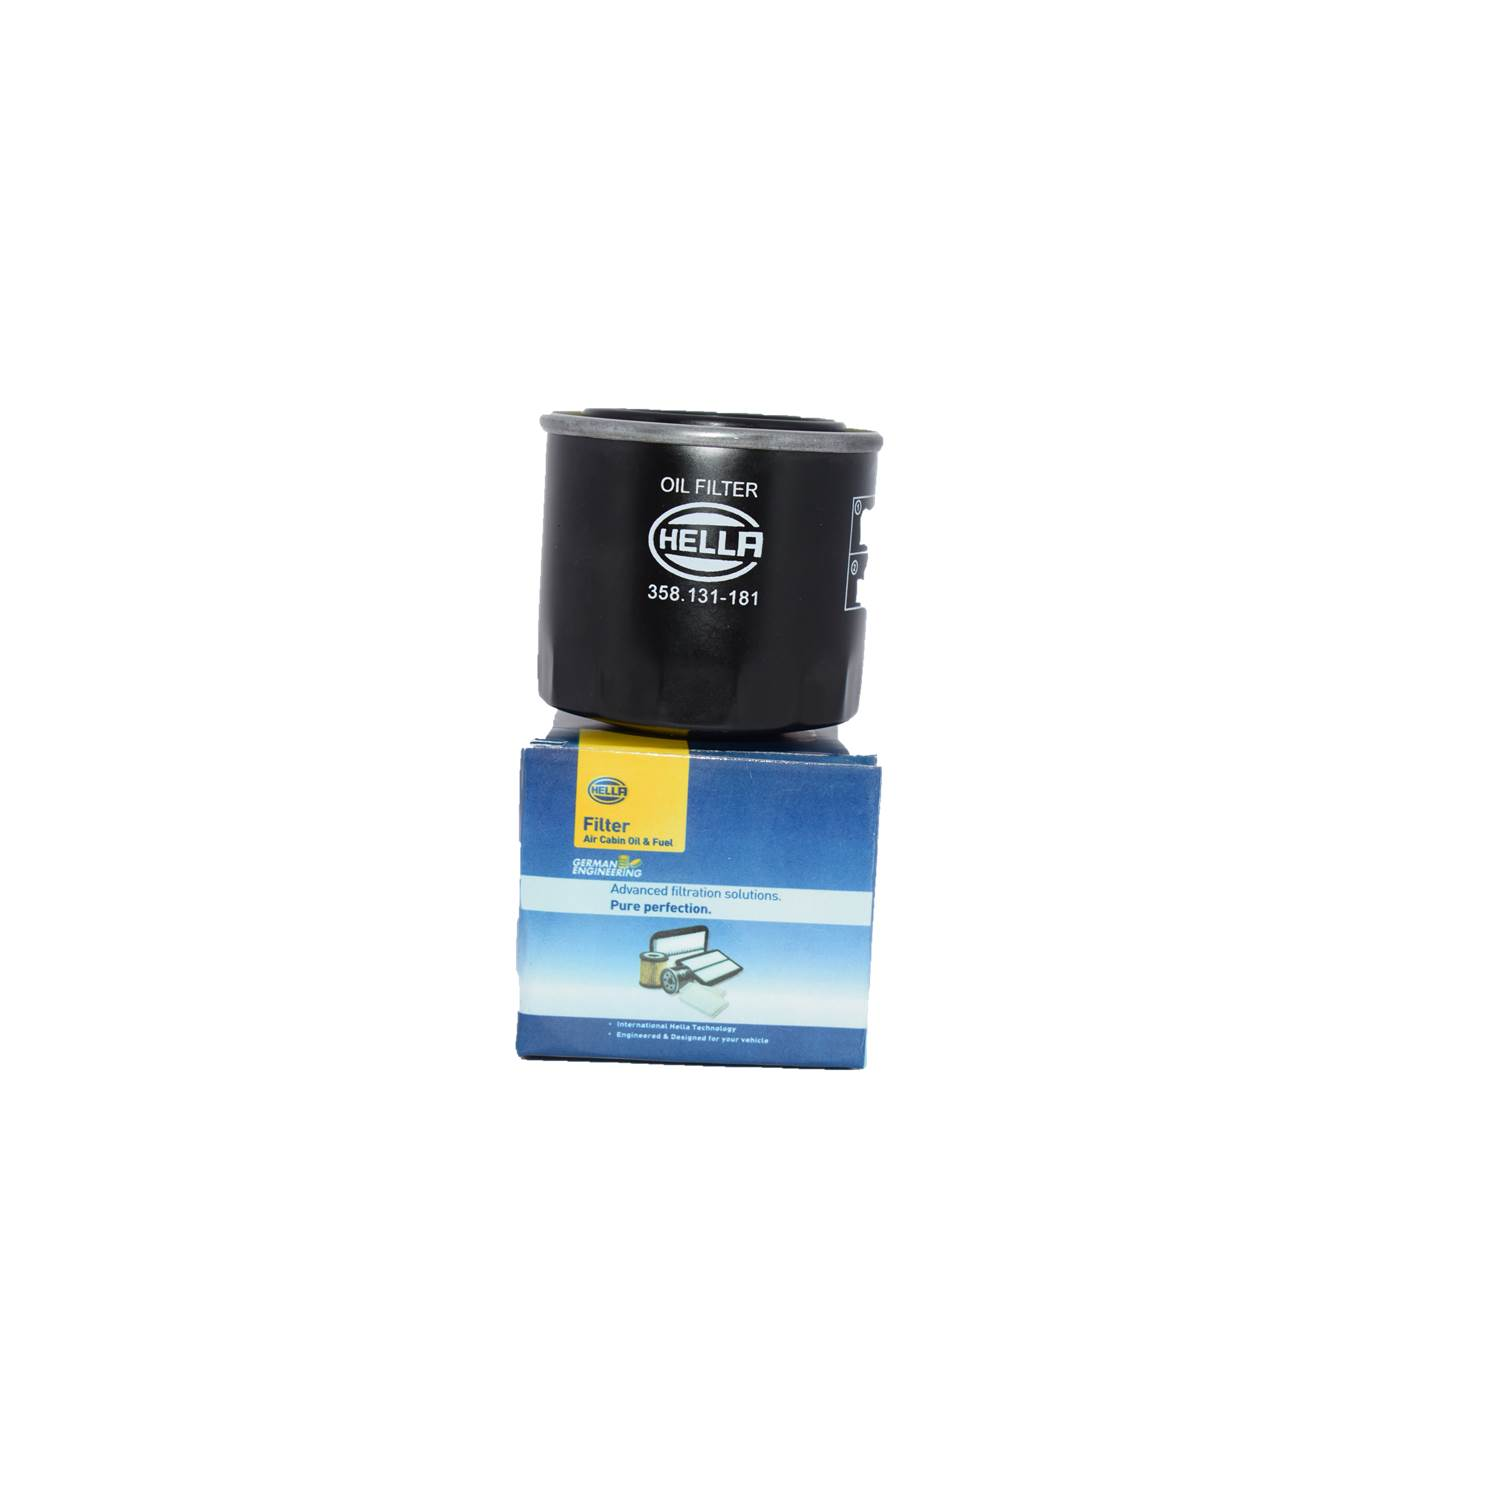 Hella 358131181 Oil Filter for Maruti 800 Cc/1000Cc/Esteem/Zen/Gypsy/Van (P)